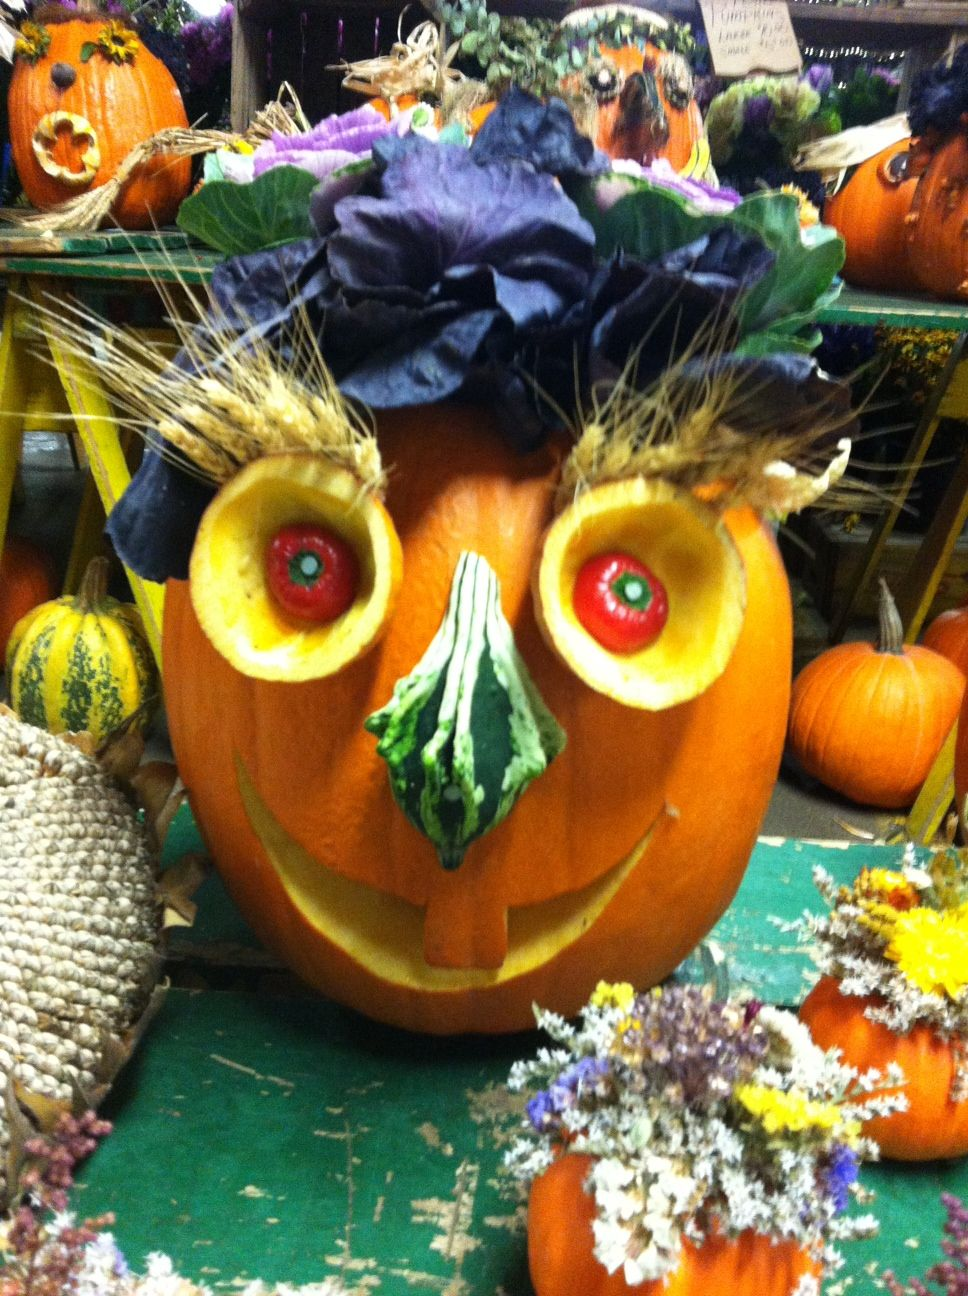 Funny Pumpkin Decorating Ideas | Pumpkins | Pinterest | Funny pumpkins